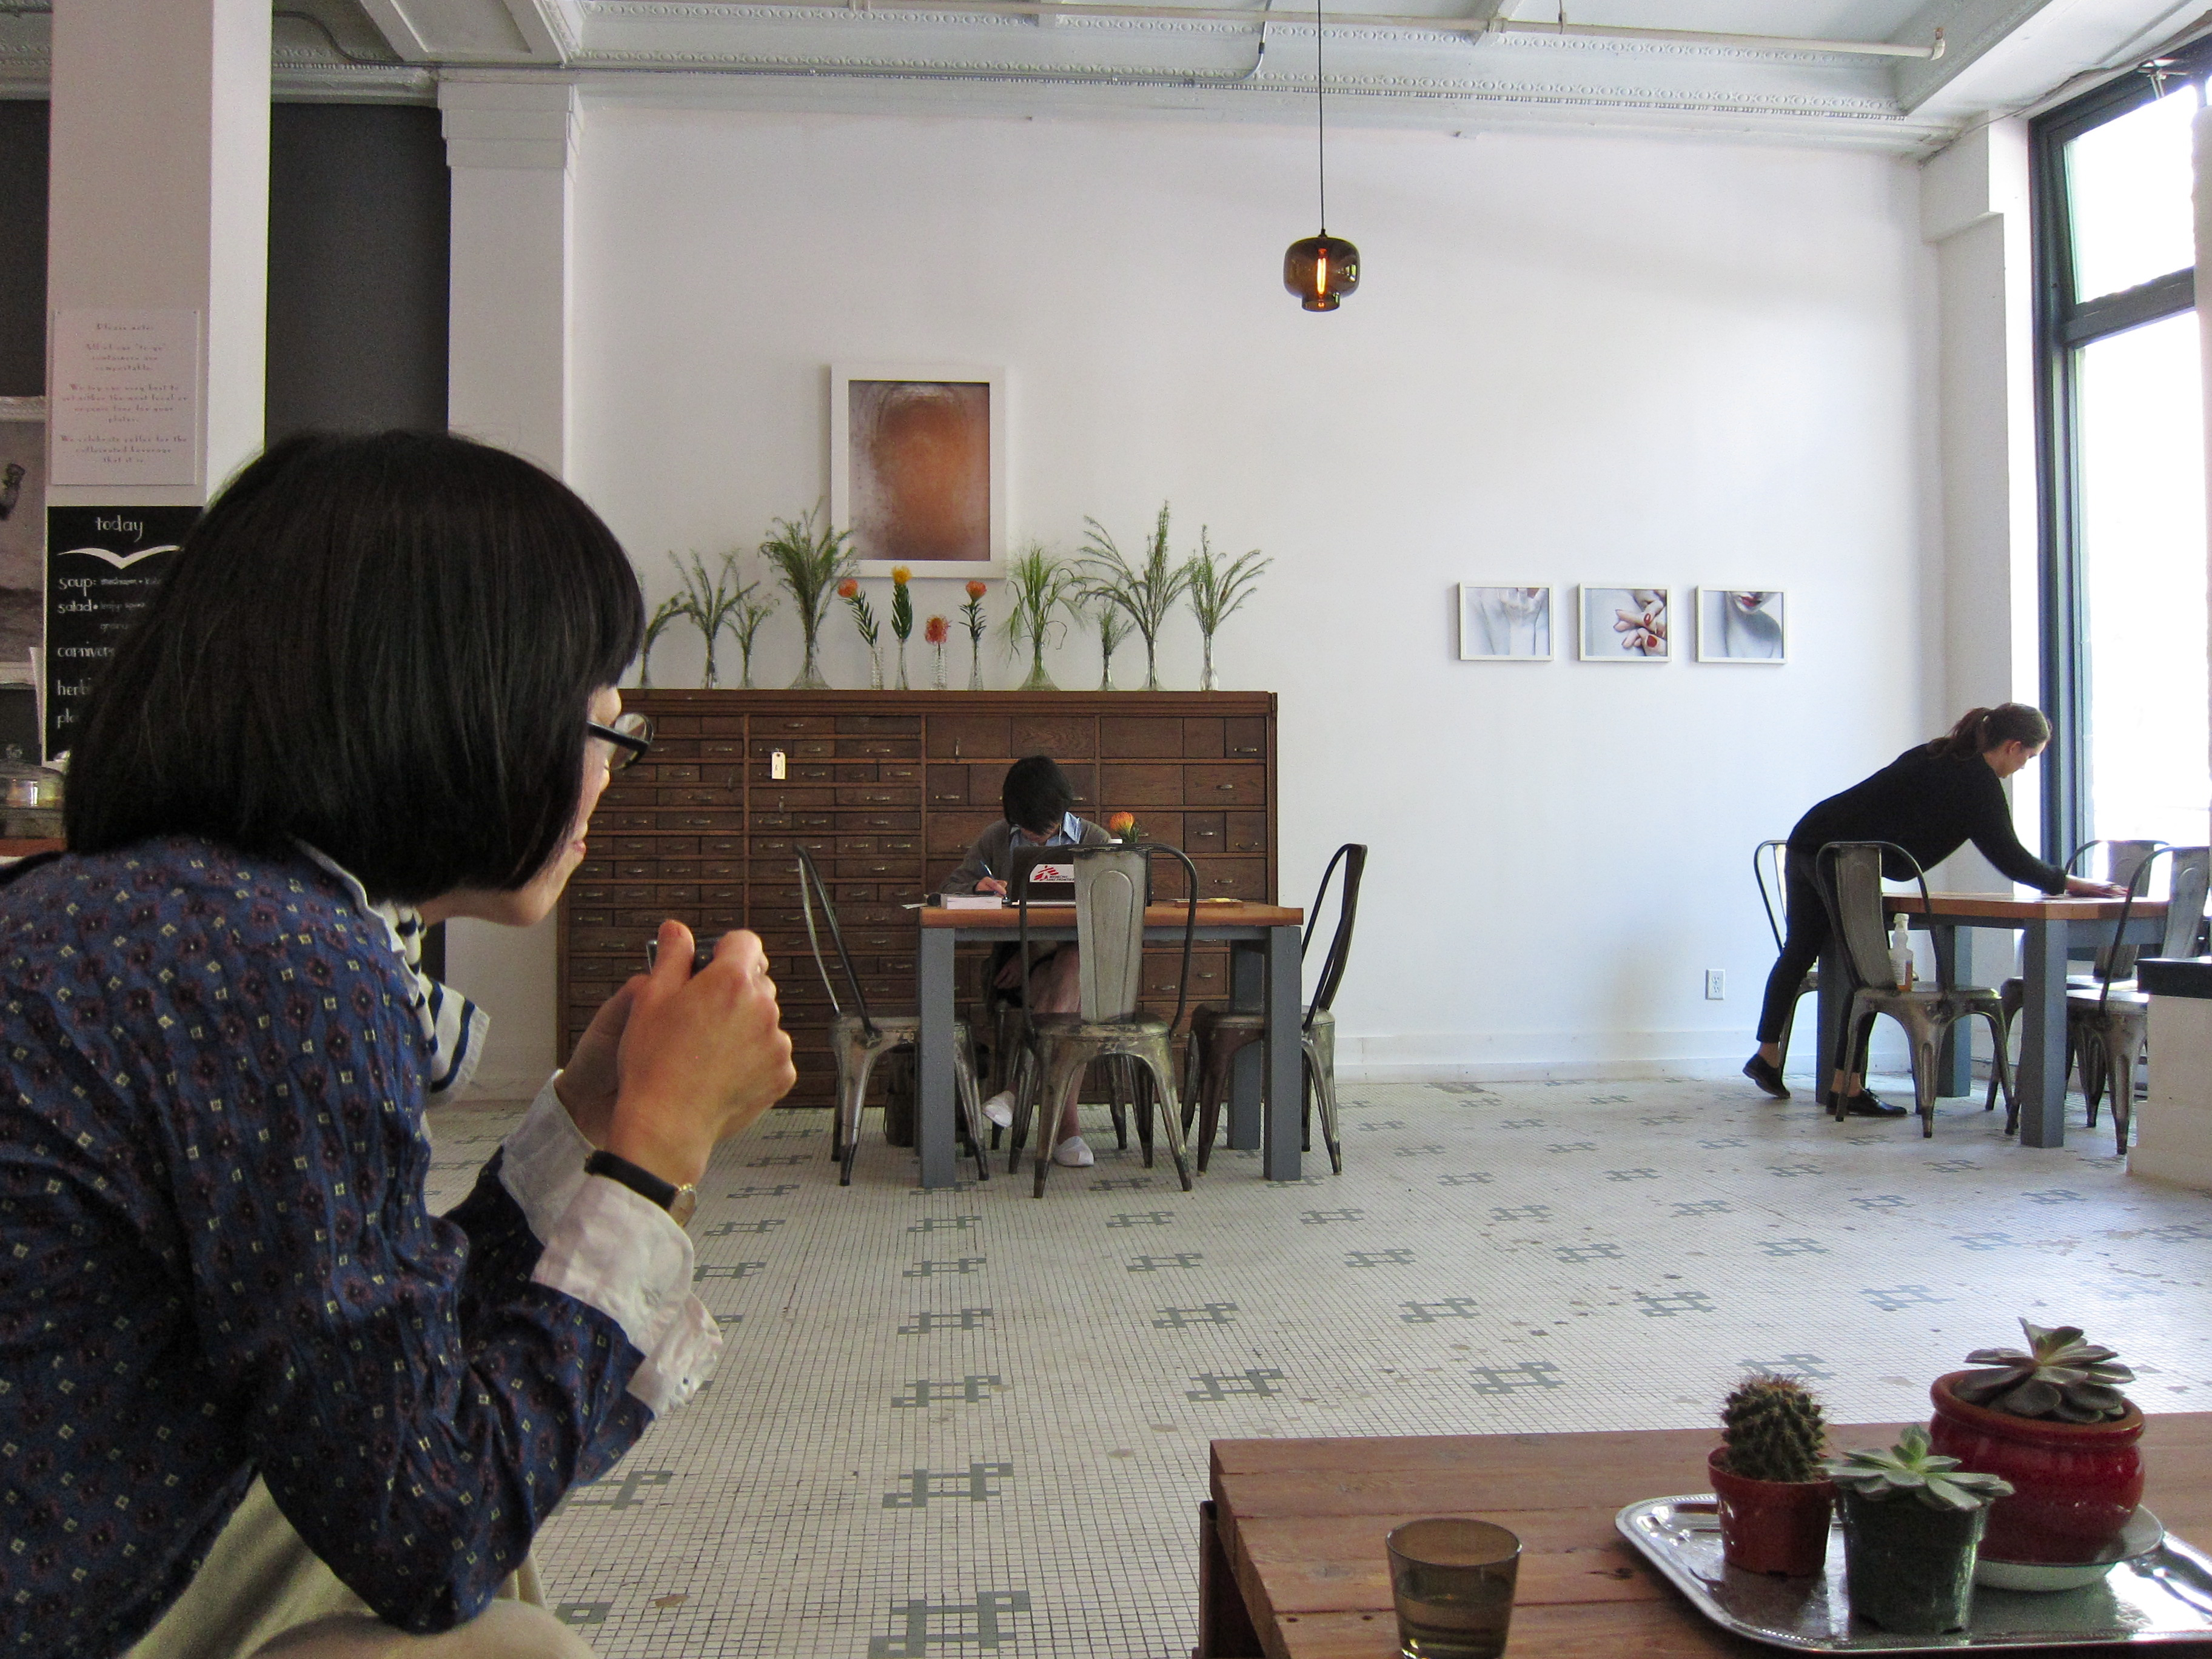 Image by Natsumi for Sokokashiko blog of a Niche Modern Oculo Light in Nelson the Seagull